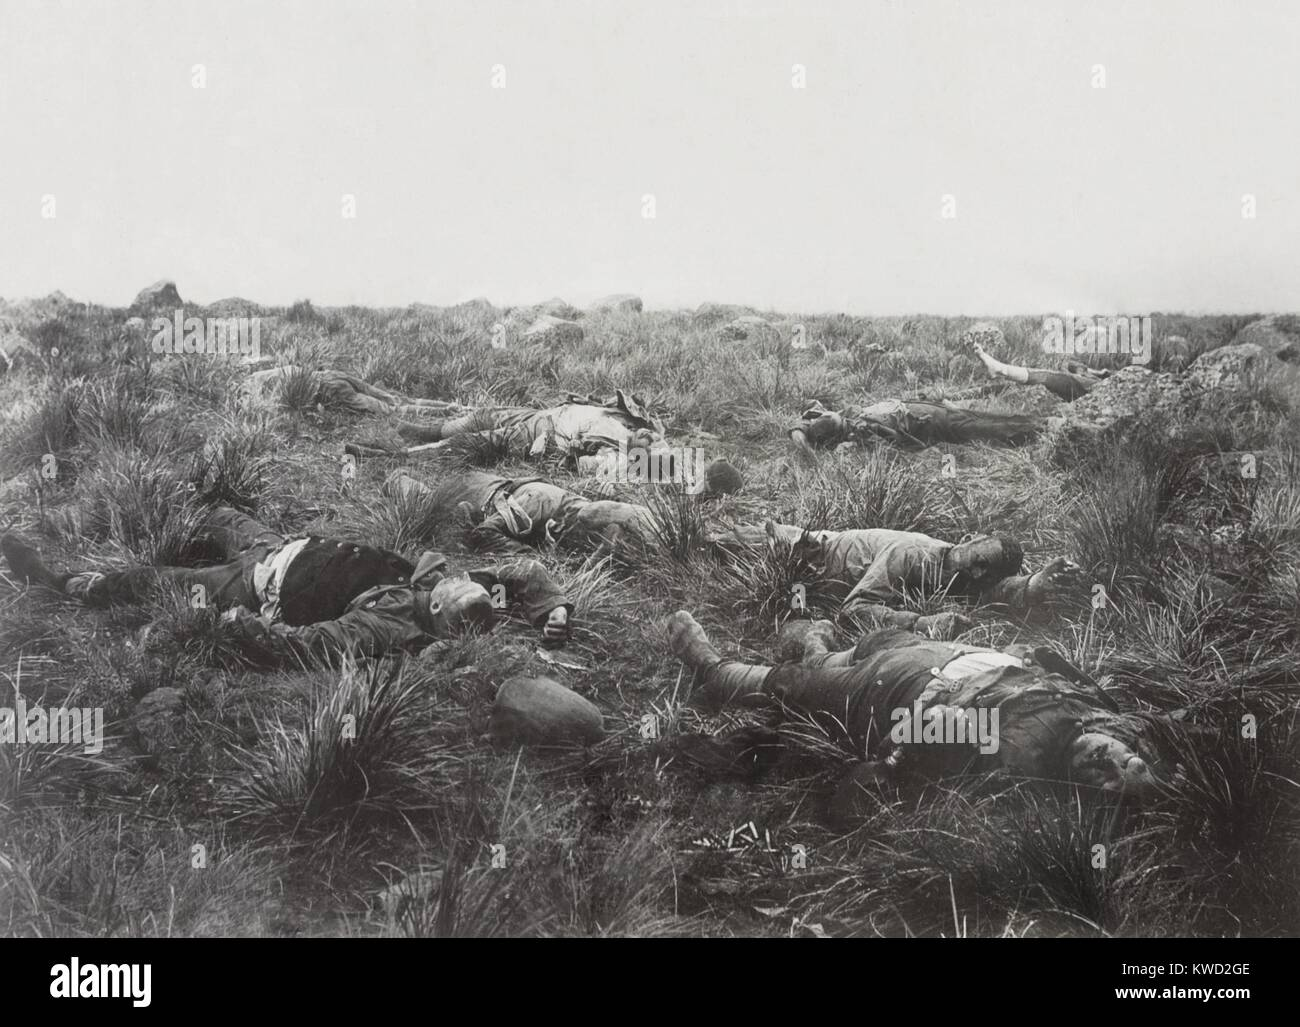 Dead British soldiers on the field after the Battle of Spionkop, Jan. 23-24, 1900. They were part of the force attempting - Stock Image